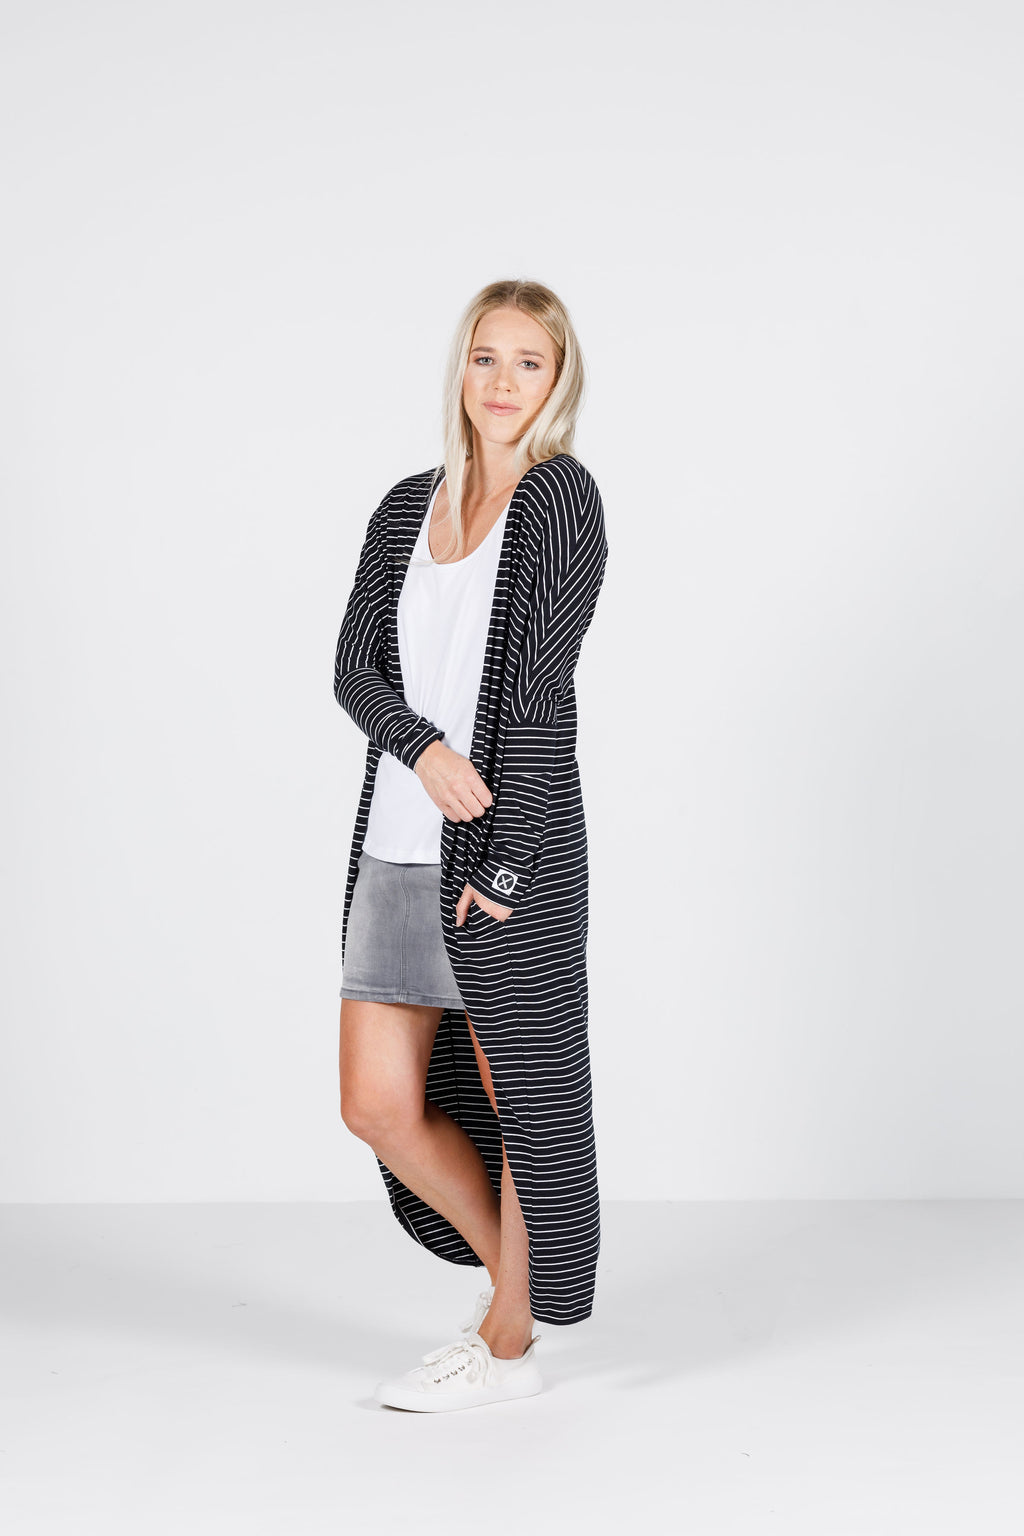 LONG LINE KIMONO - Black with thin white stripes